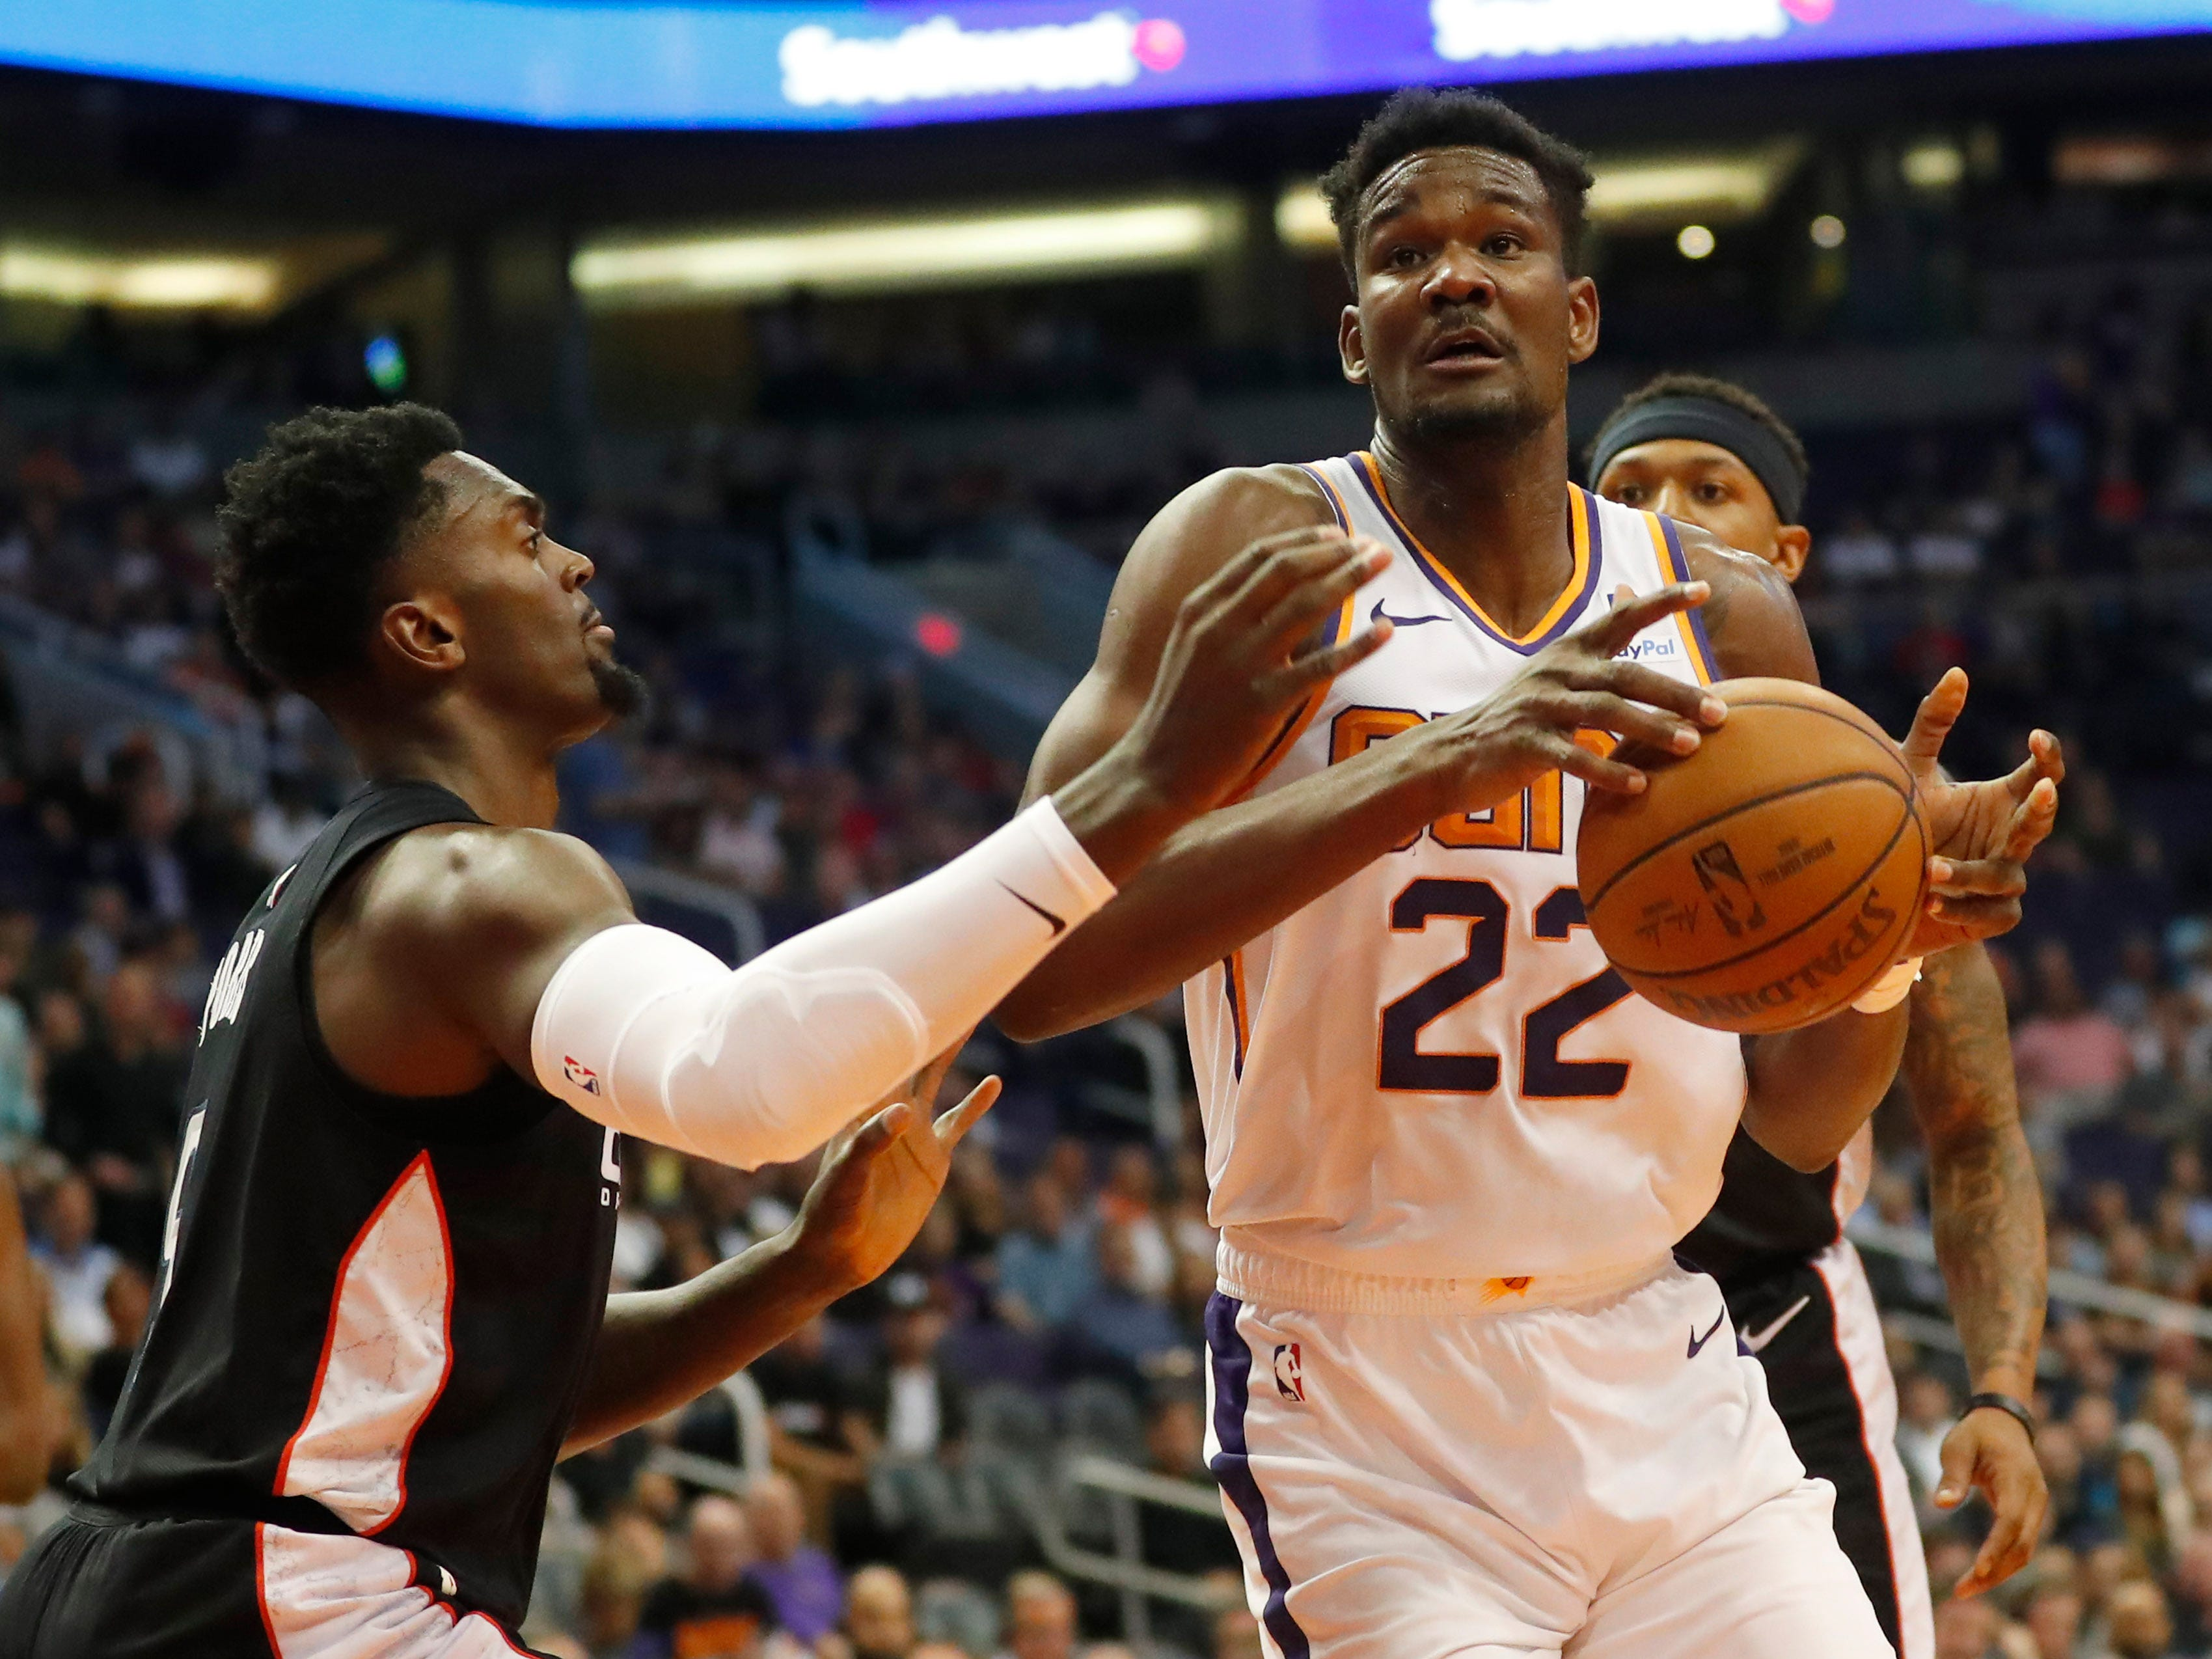 Phoenix Suns center Deandre Ayton (22) drives towards the basket while defended by Washington Wizards forward Bobby Portis (5) during the first quarter in Phoenix March 27, 2019.